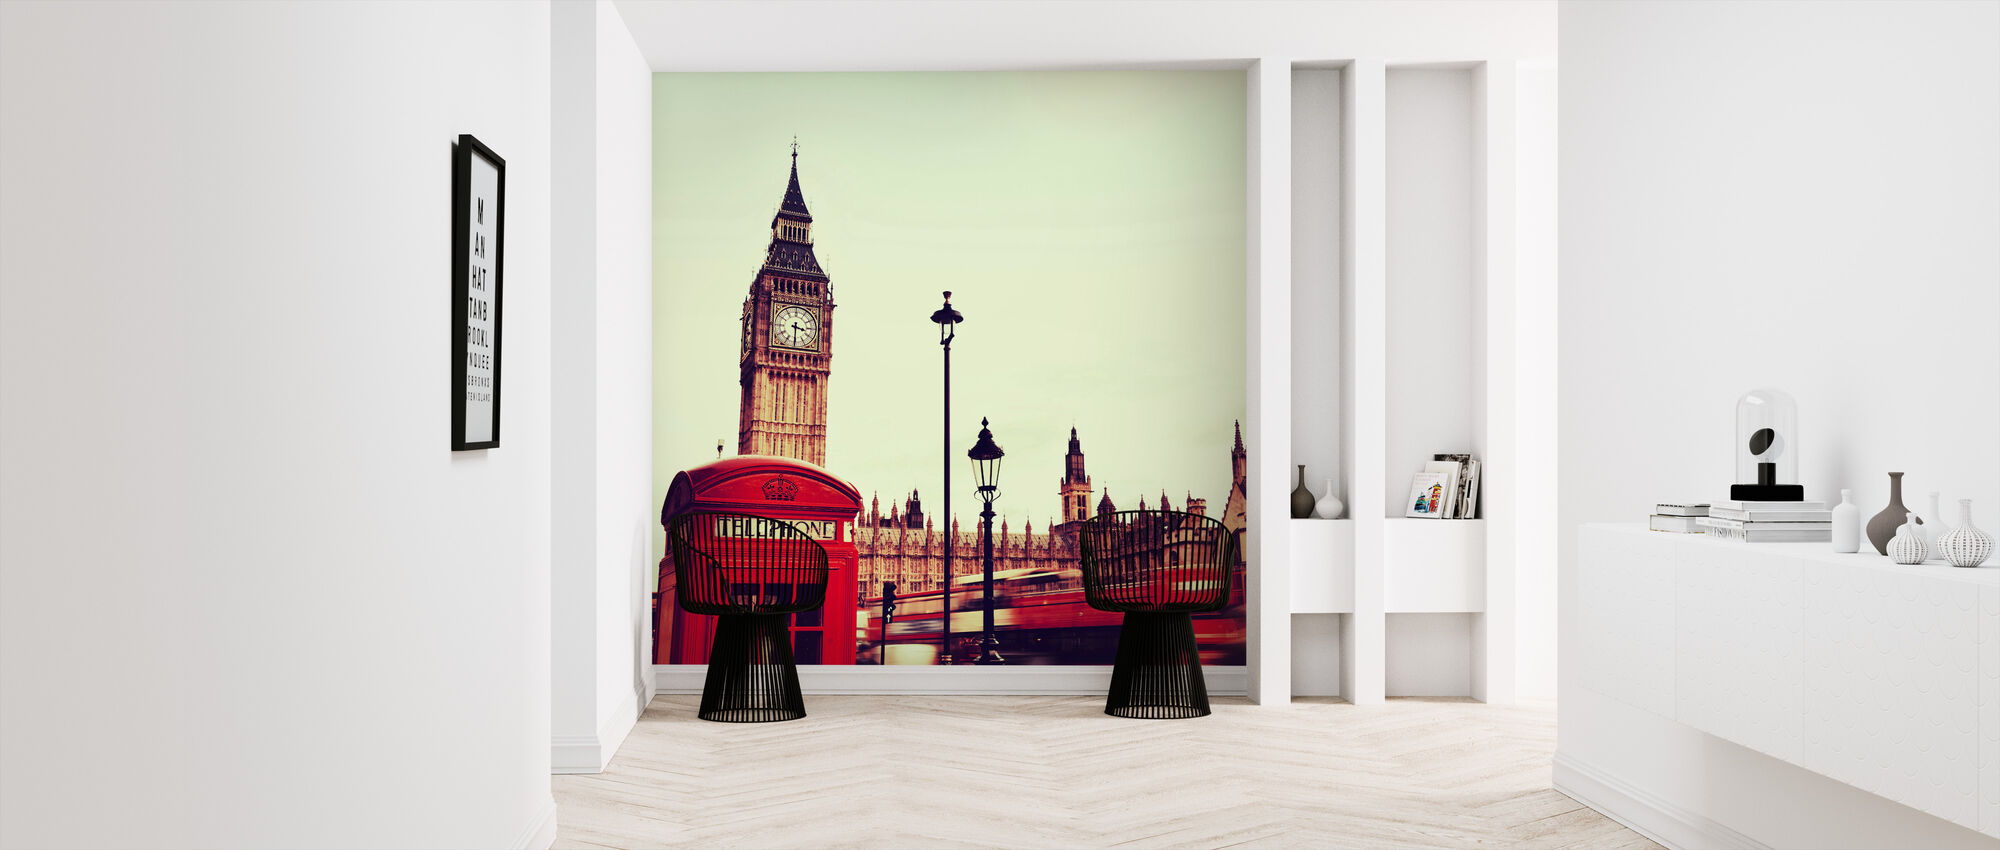 Telephone Booth and Big Ben - Wallpaper - Hallway